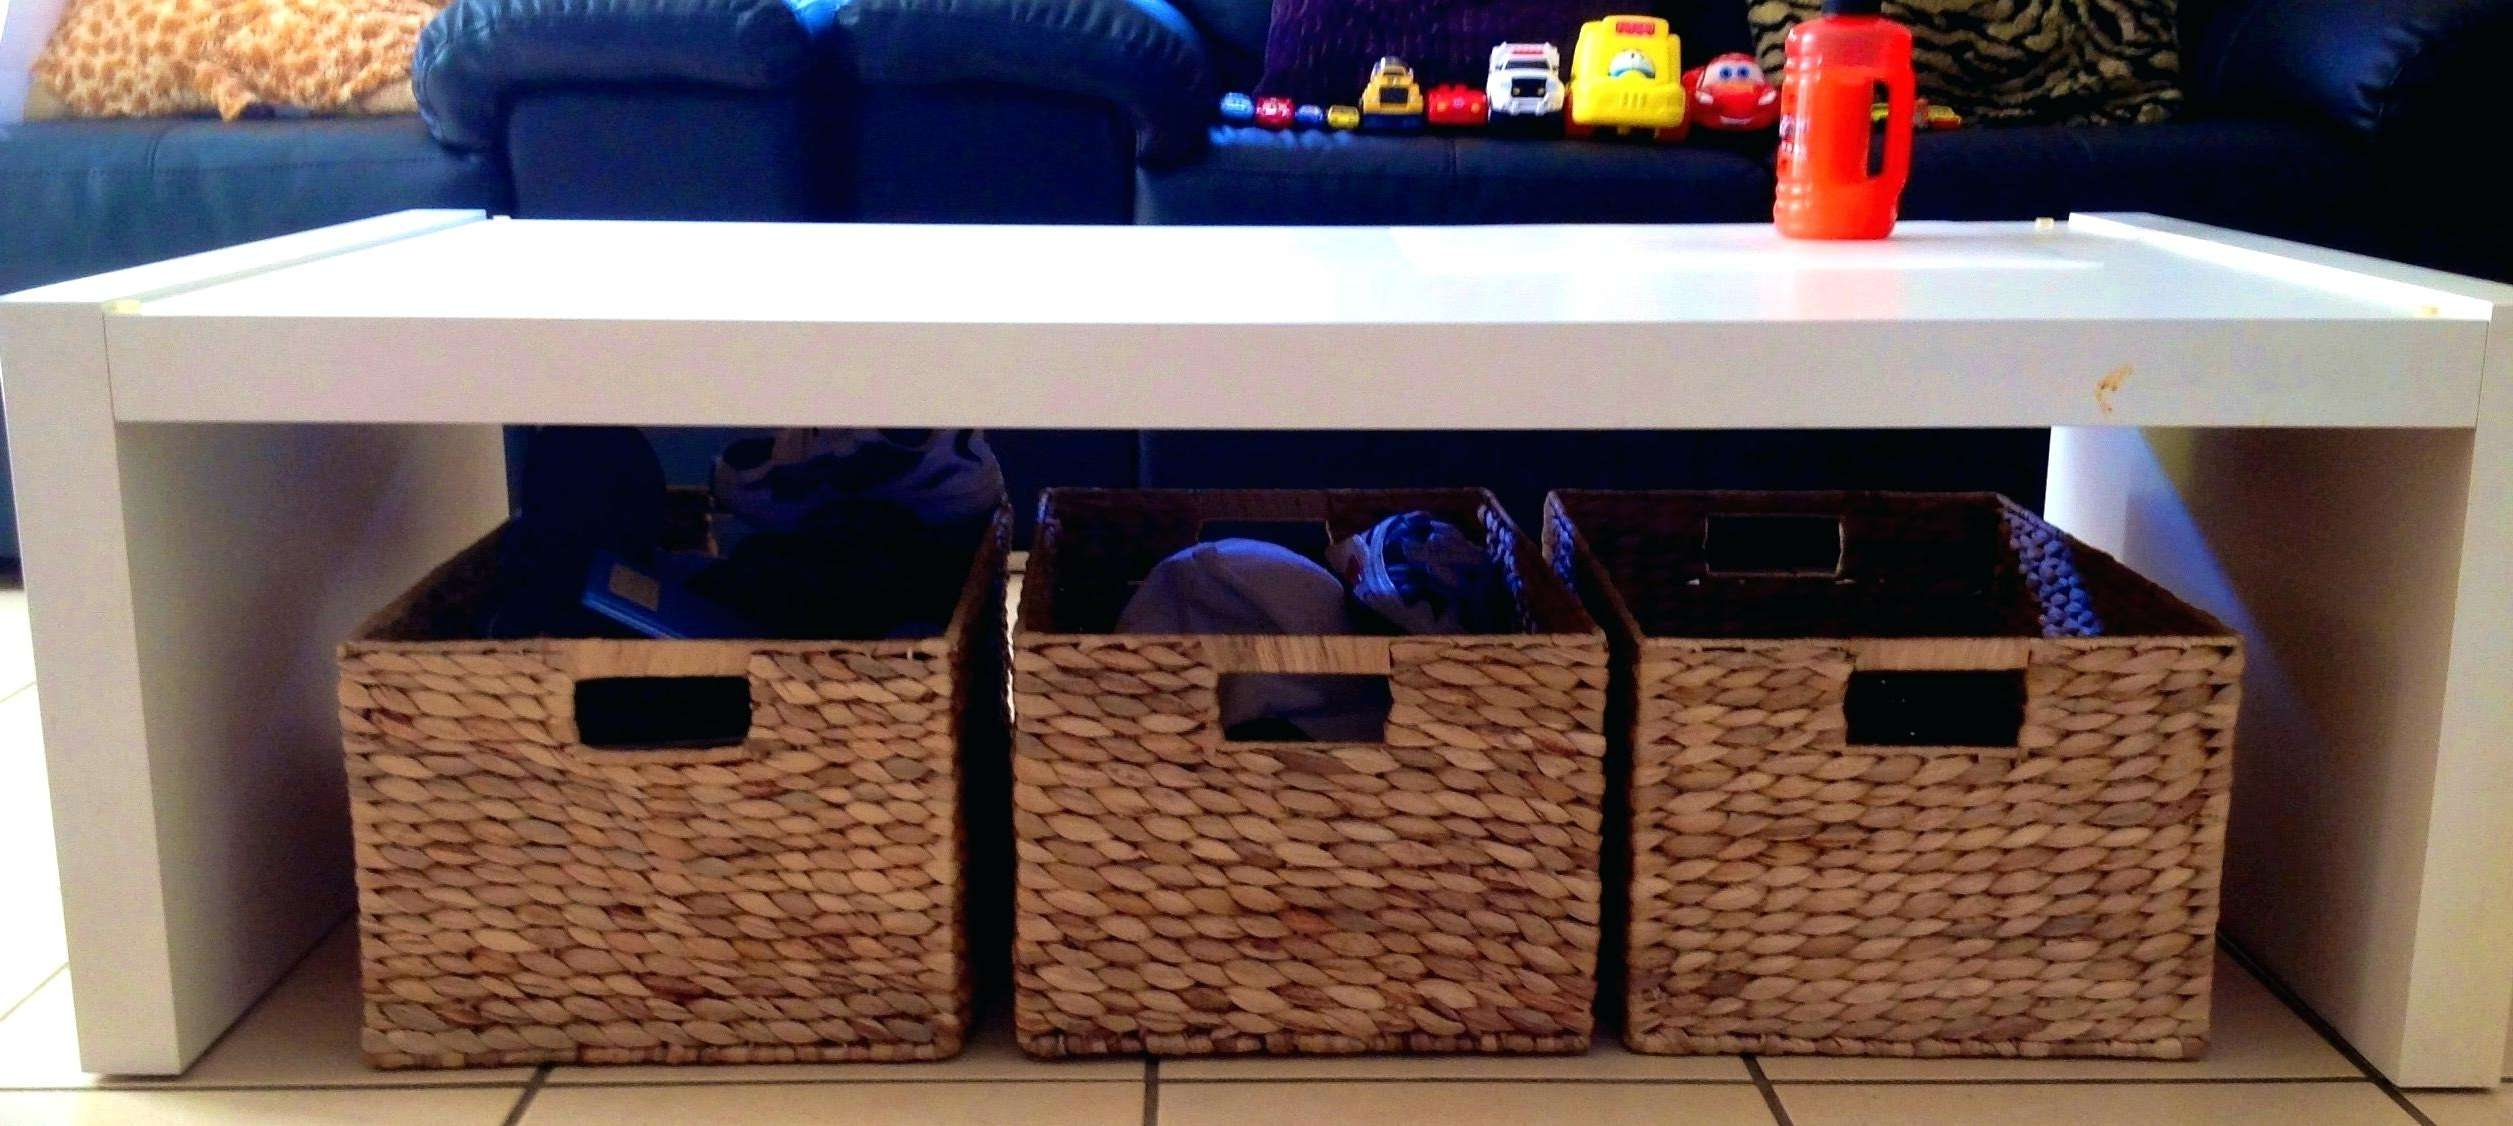 2017 Coffee Tables With Basket Storage Underneath Within Coffee Table: Coffee Table With Baskets (View 2 of 20)